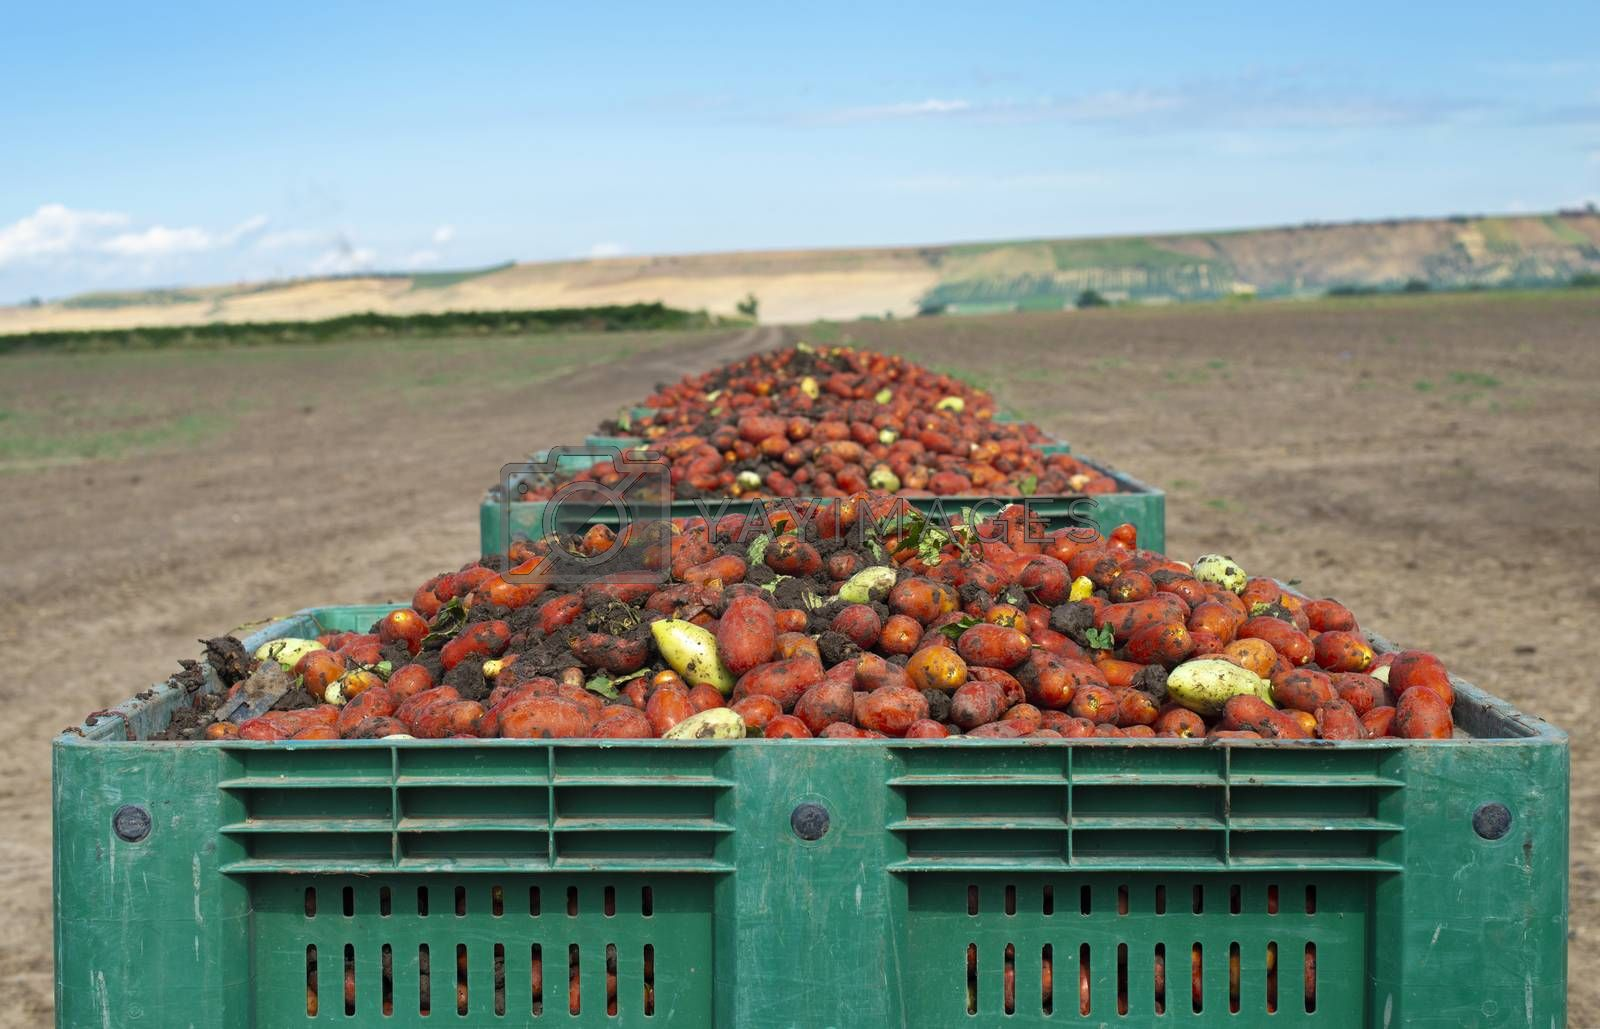 Tomatoes for canning. Agriculture land and crates with tomatoes. Harvested tomatoes.